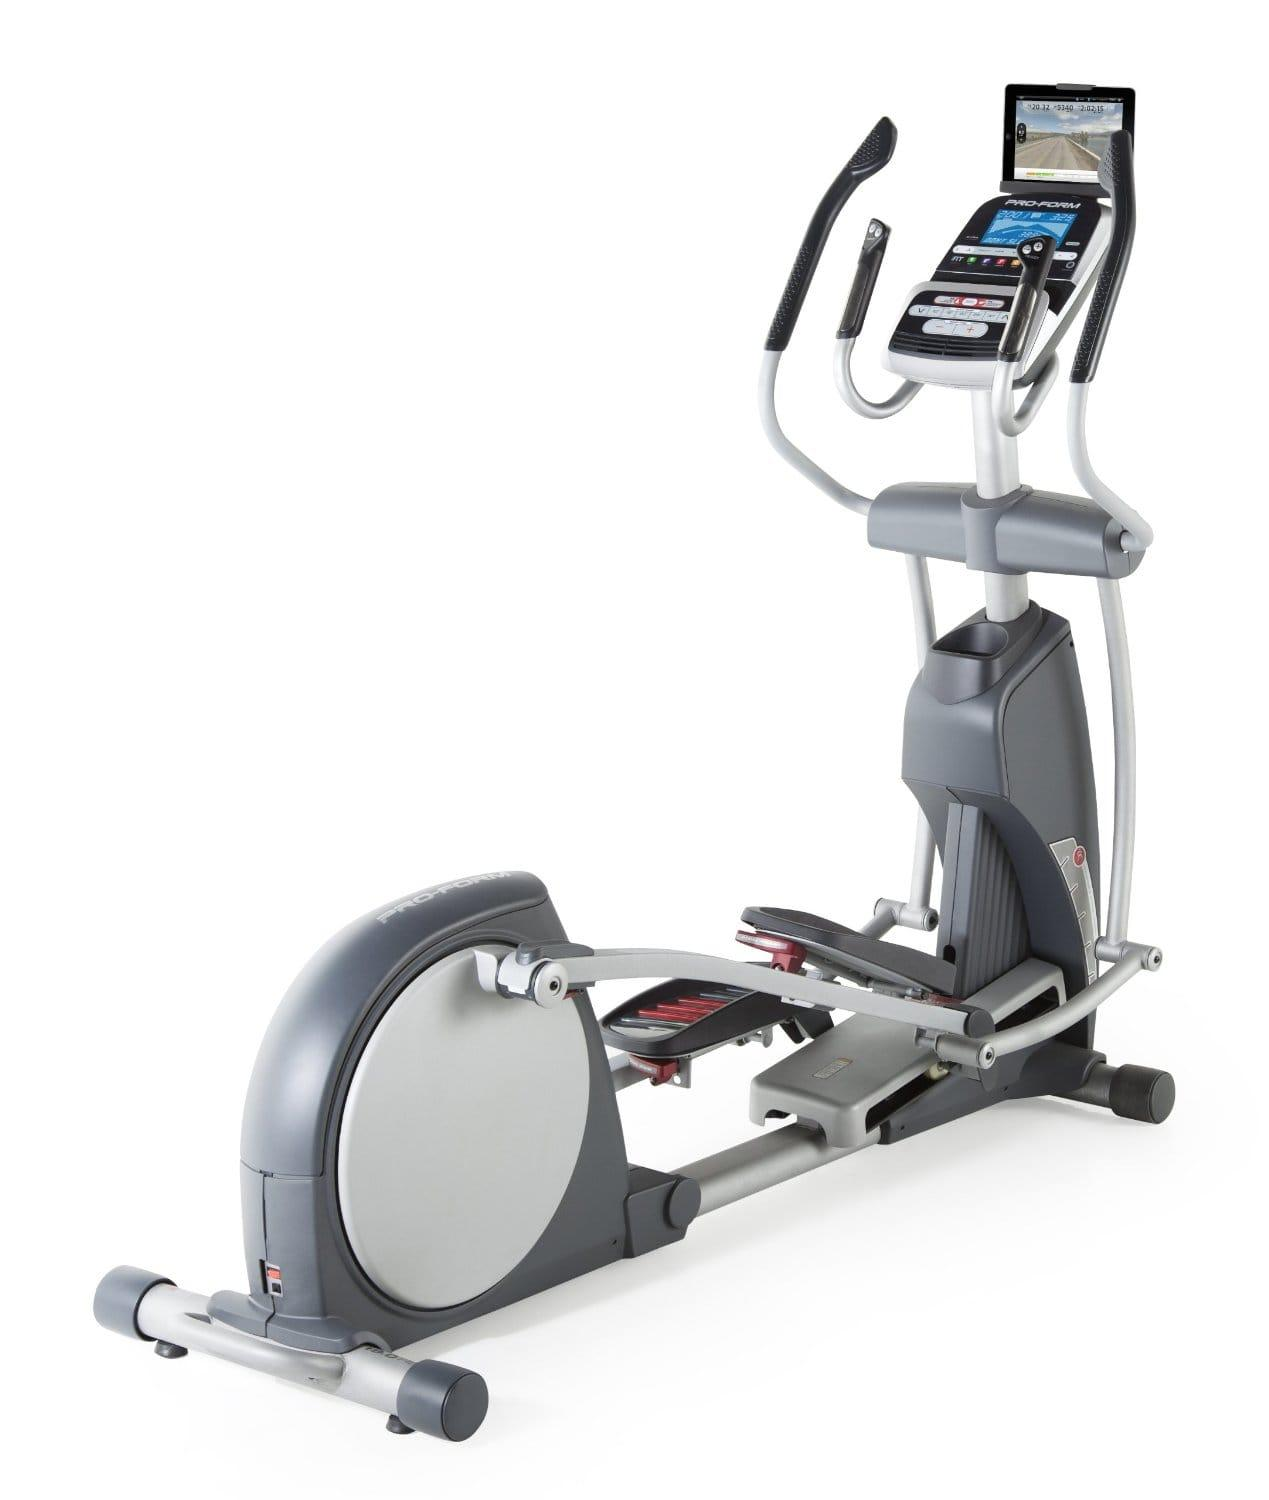 ProForm 19.0 RE Elliptical (Discontinued